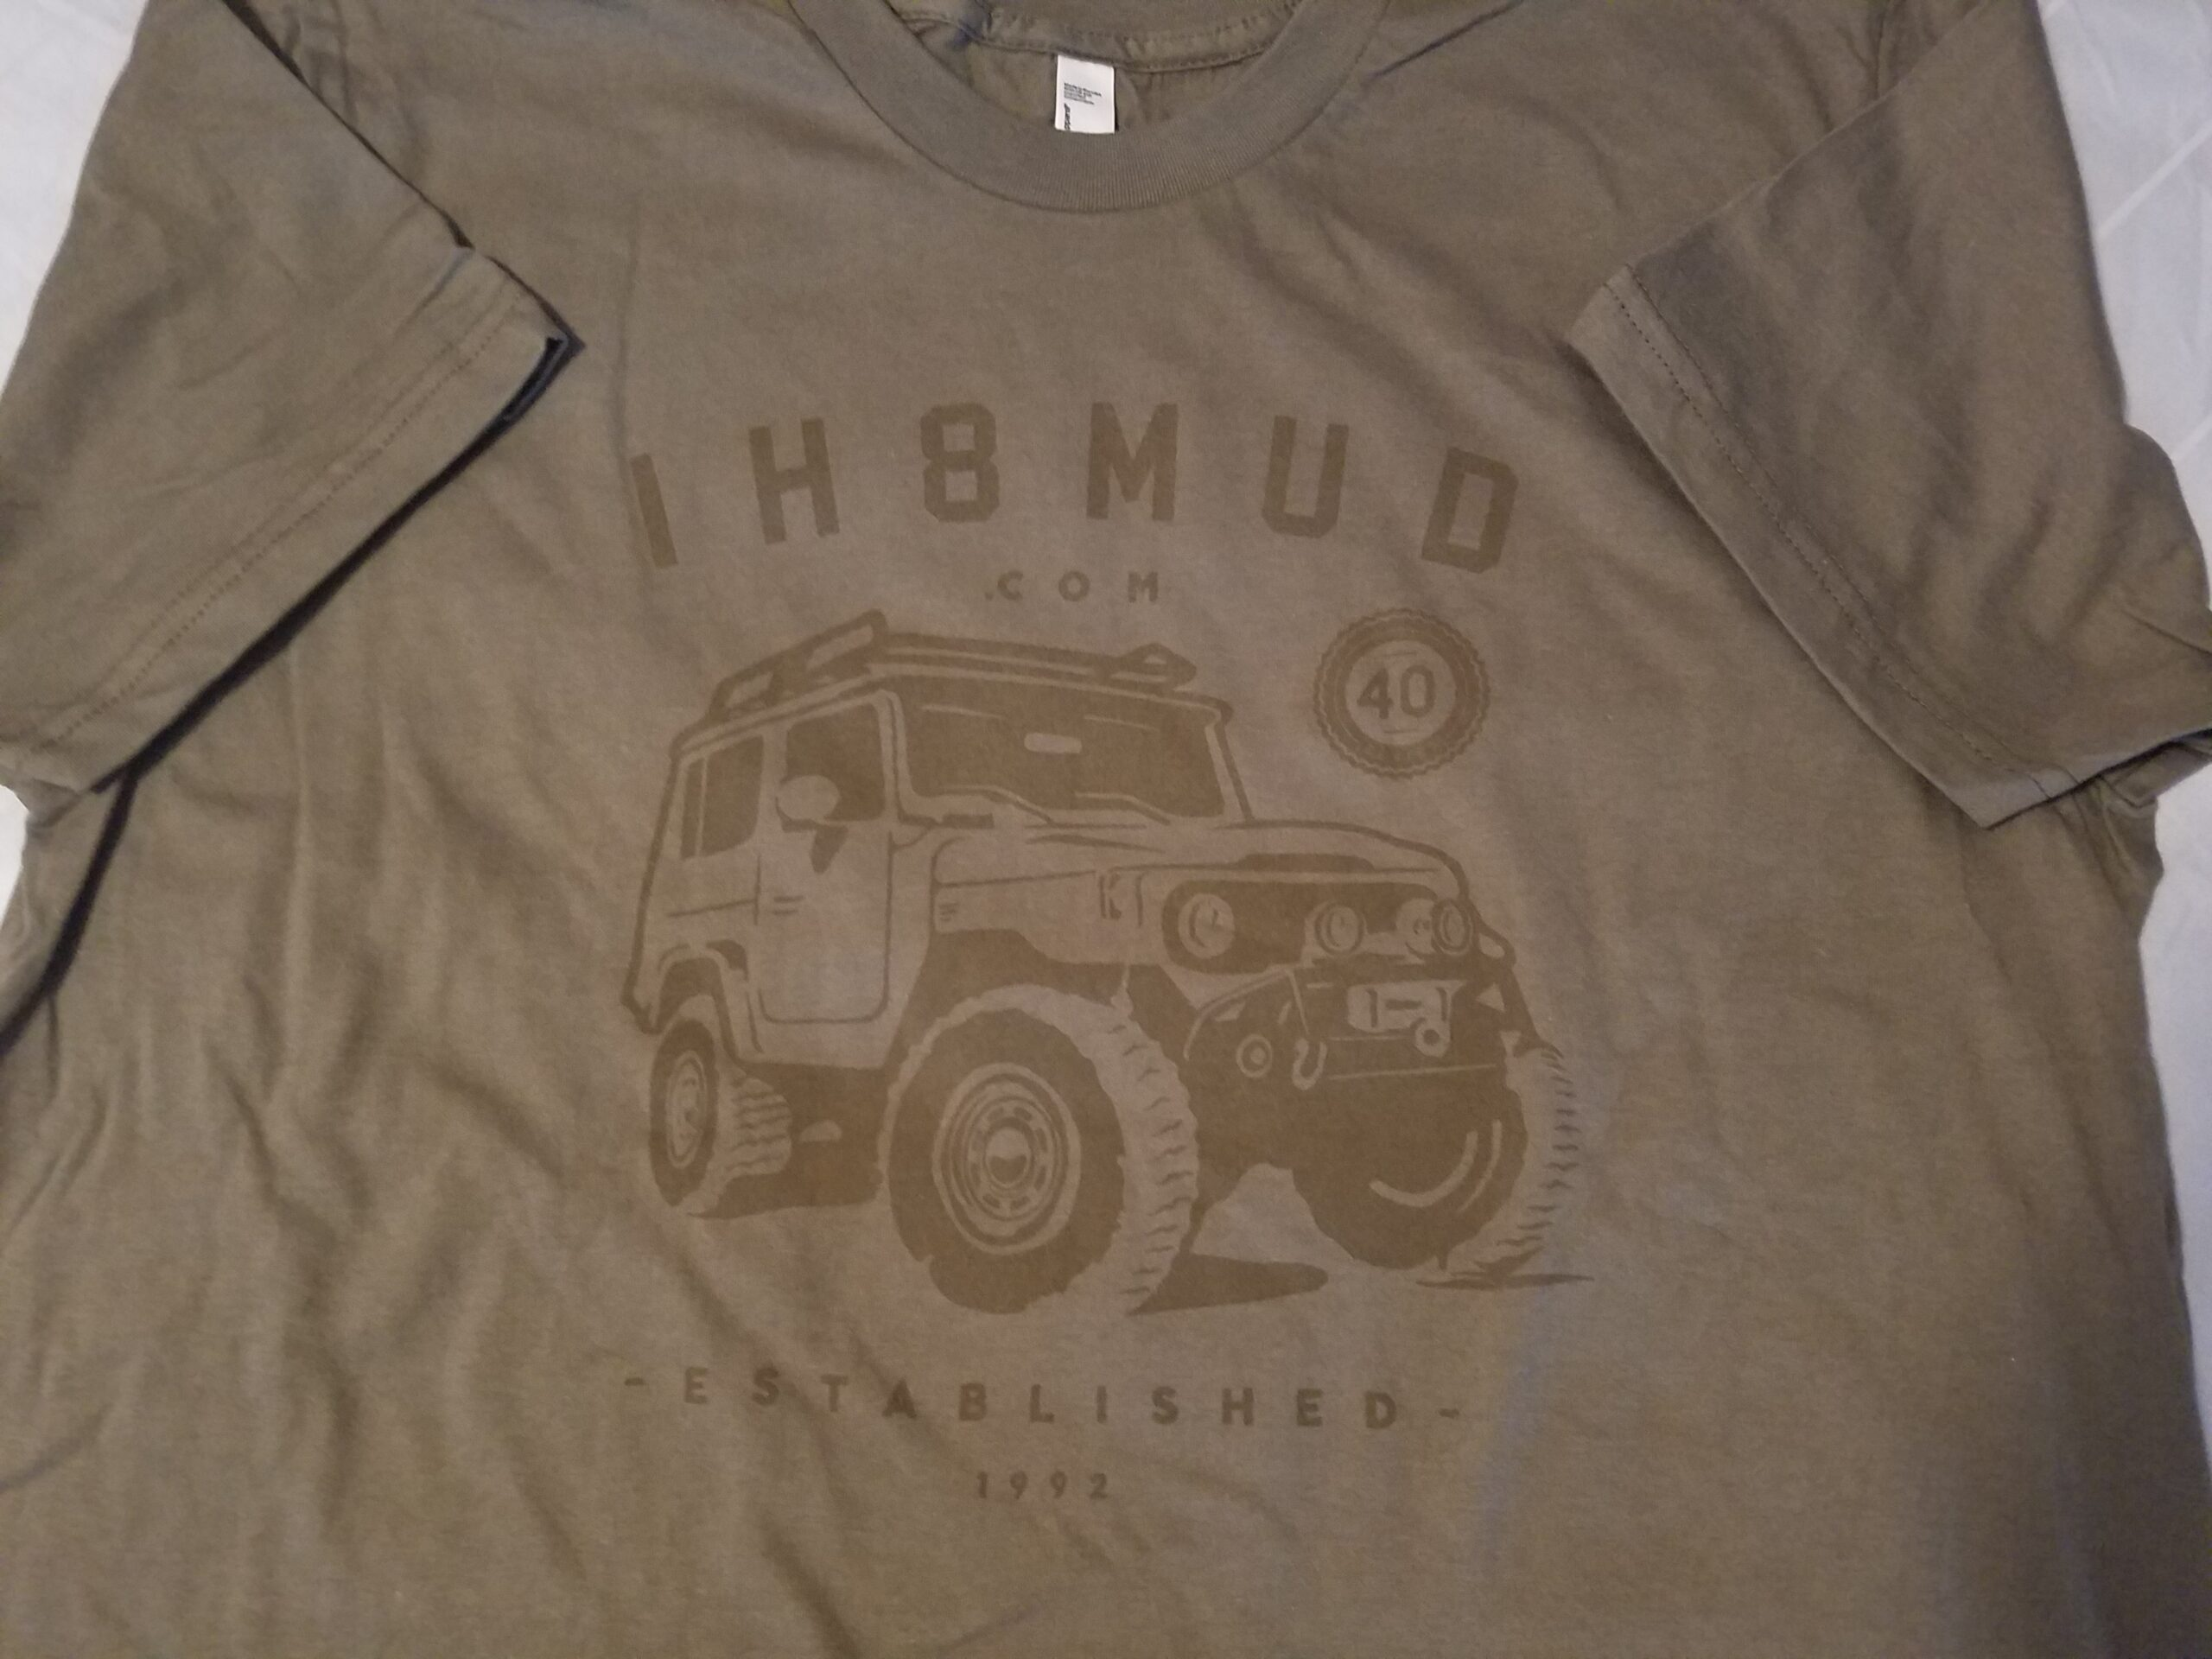 Brown IH8MUD FJ40 logo tee